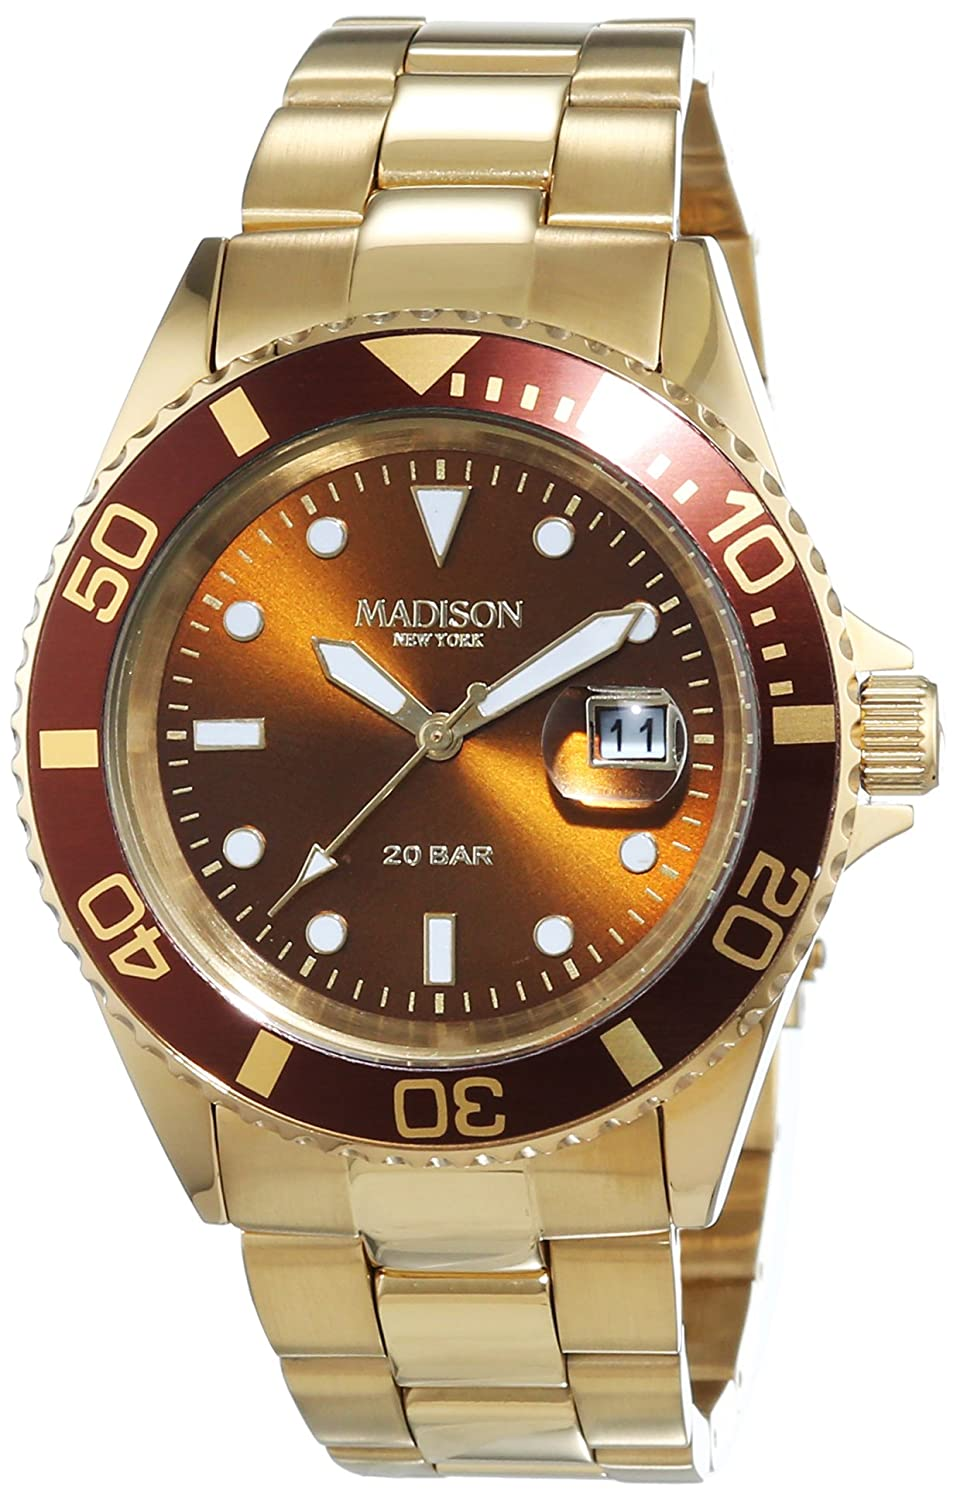 MADISON NEW YORK Unisex-Armbanduhr GLAMOR Analog Quarz Edelstahl beschichtet G4790D1